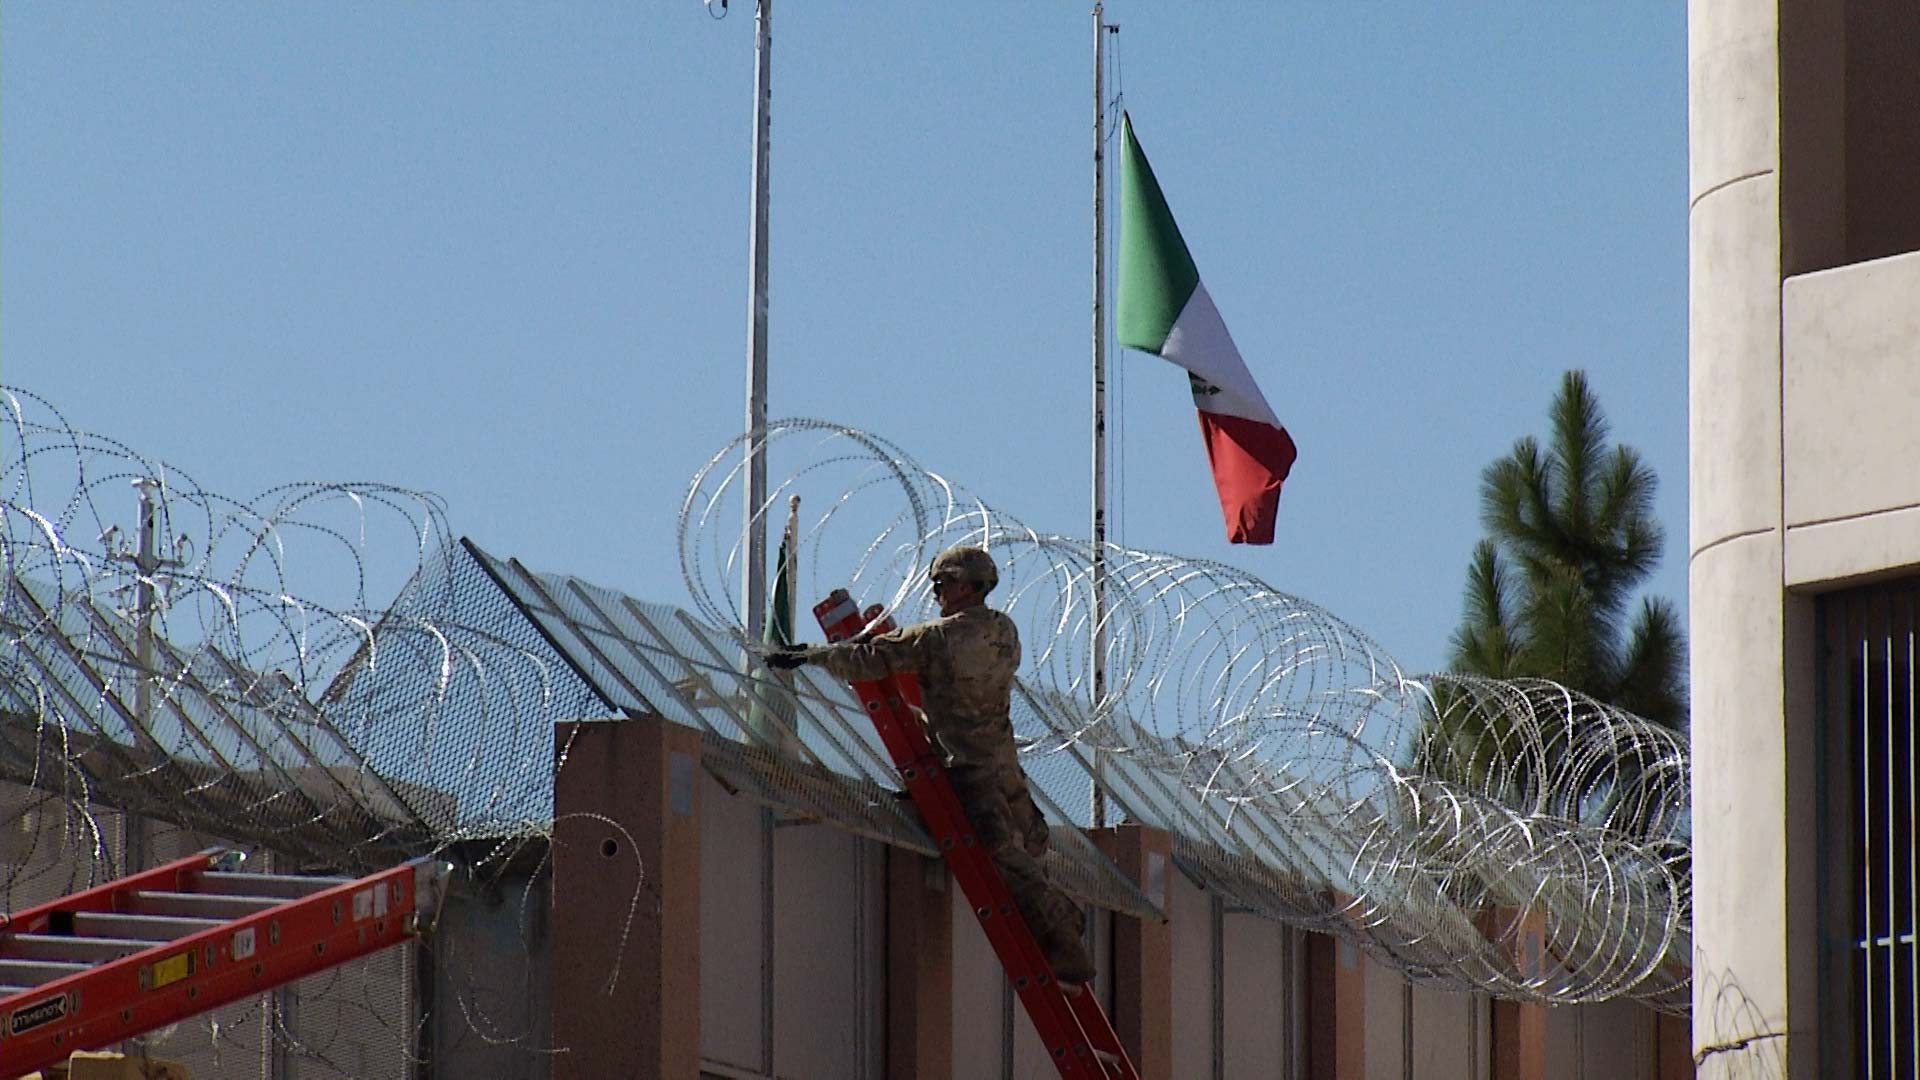 A soldier installs concertina wire along the border wall near the Dennis DeConcini Port of Entry in Nogales on Thursday, Nov. 15, 2018. A new deployment is expected to stretch an additional 150 miles of razor wire along the border.